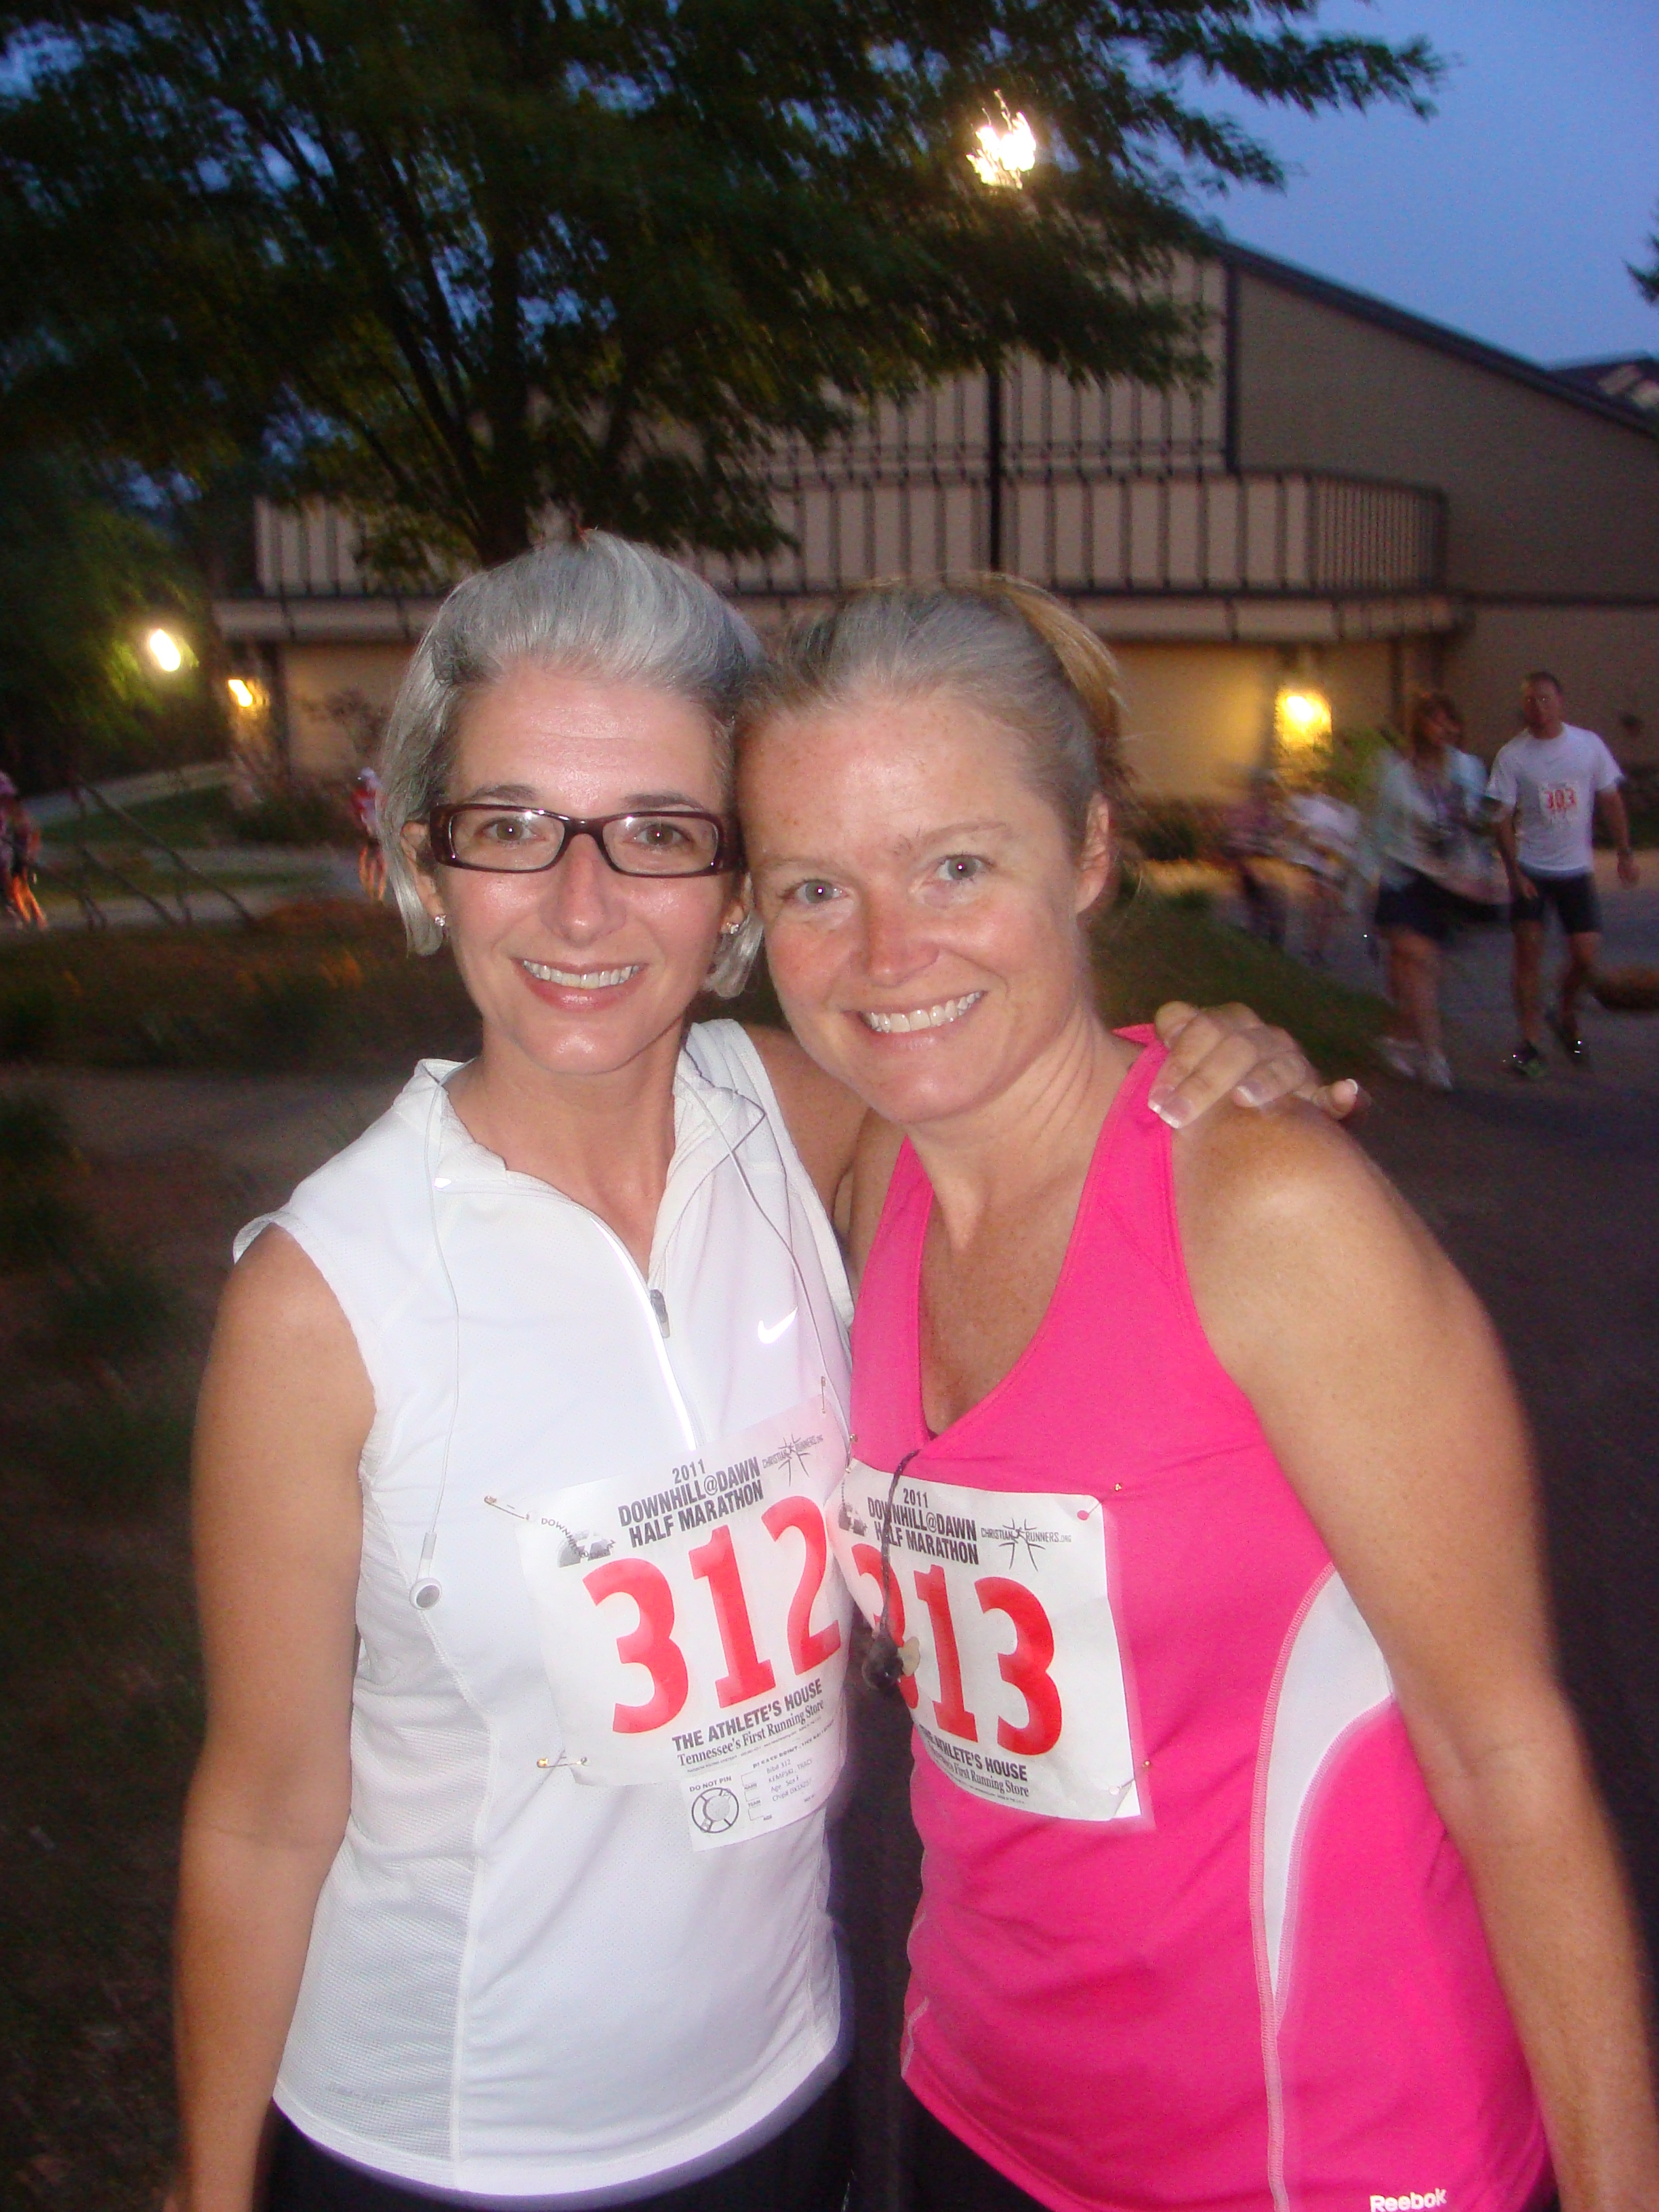 This is my sister, Tracy, and me before our first Half-Marathon